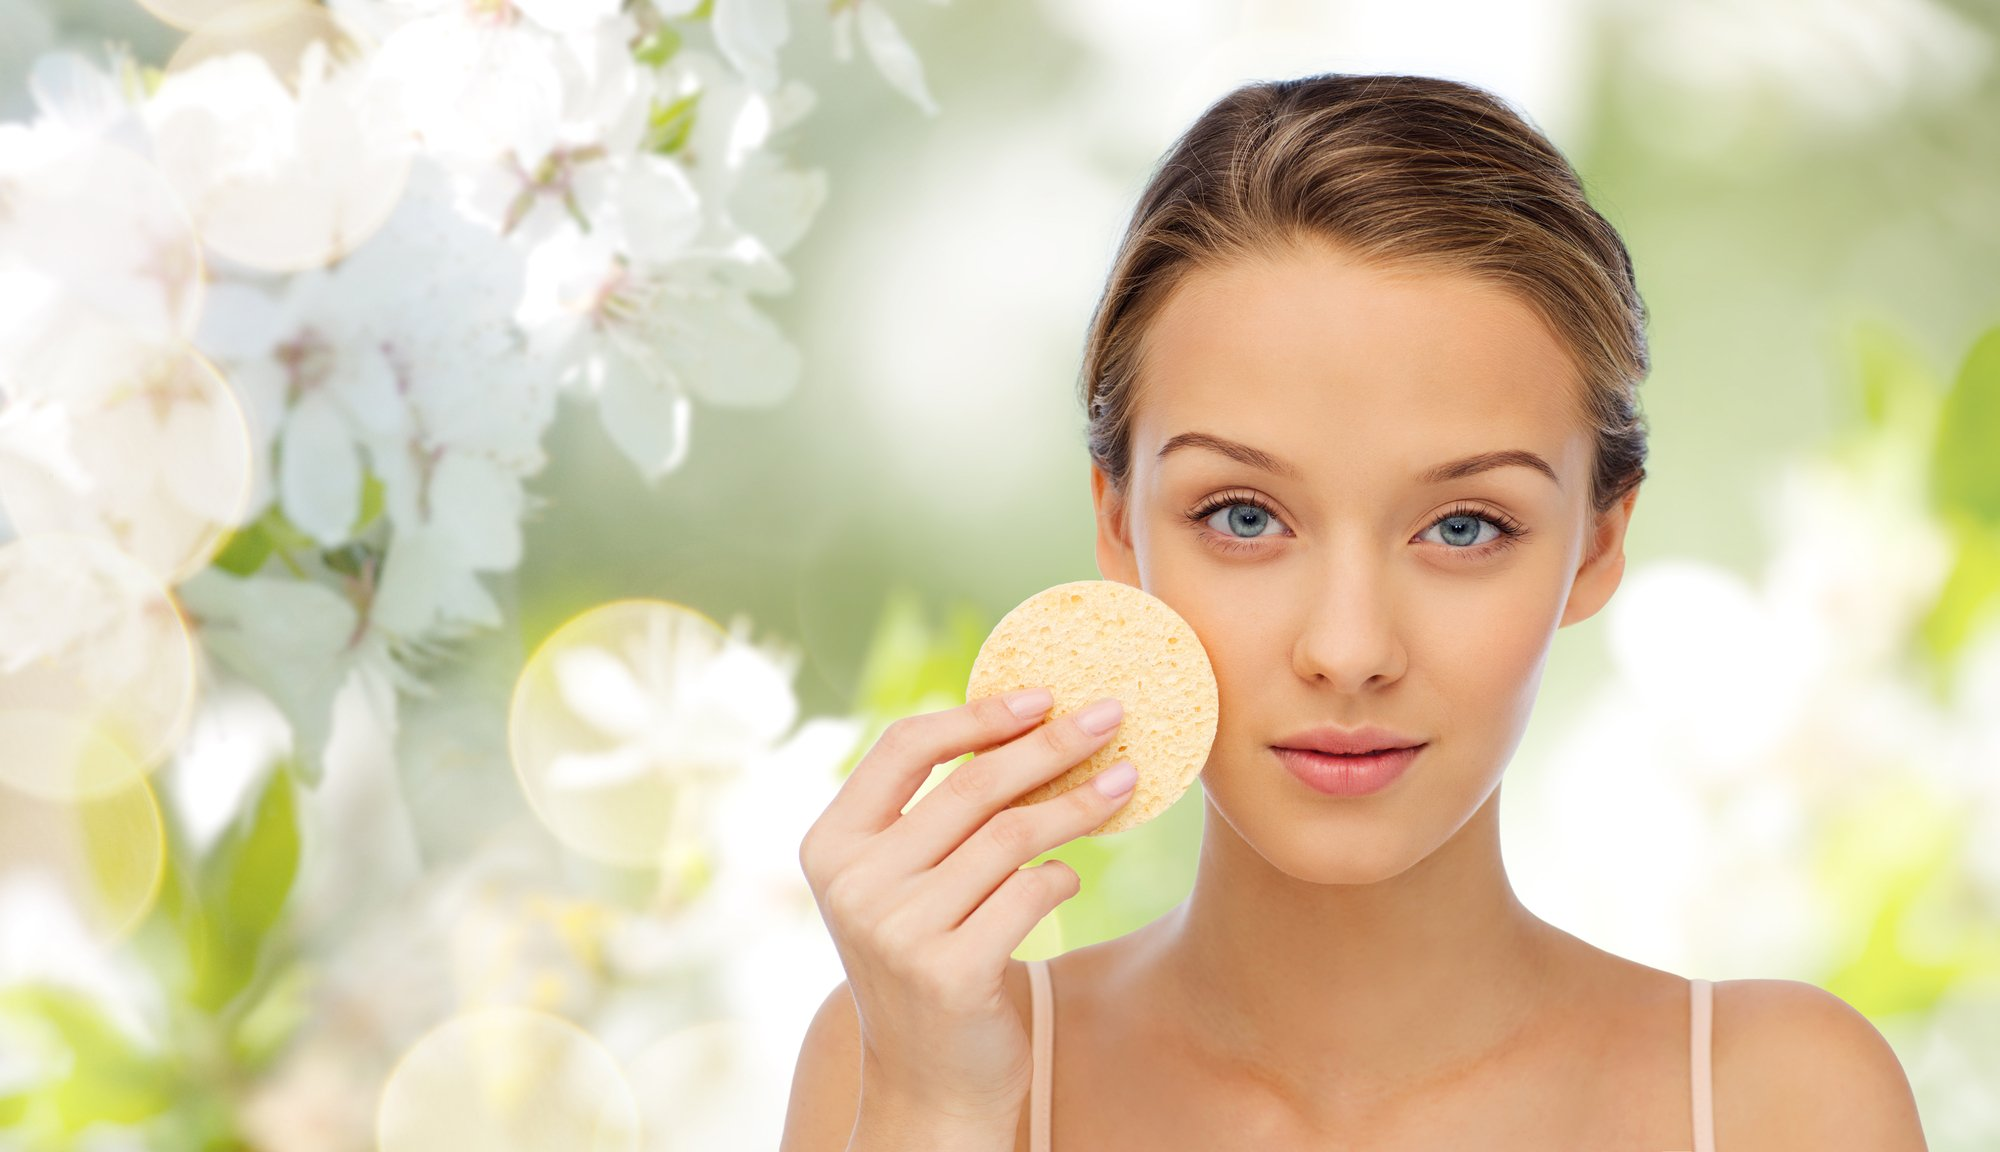 beauty, people, toiletry and skincare concept - young woman cleaning face with exfoliating sponge over cherry blossom background